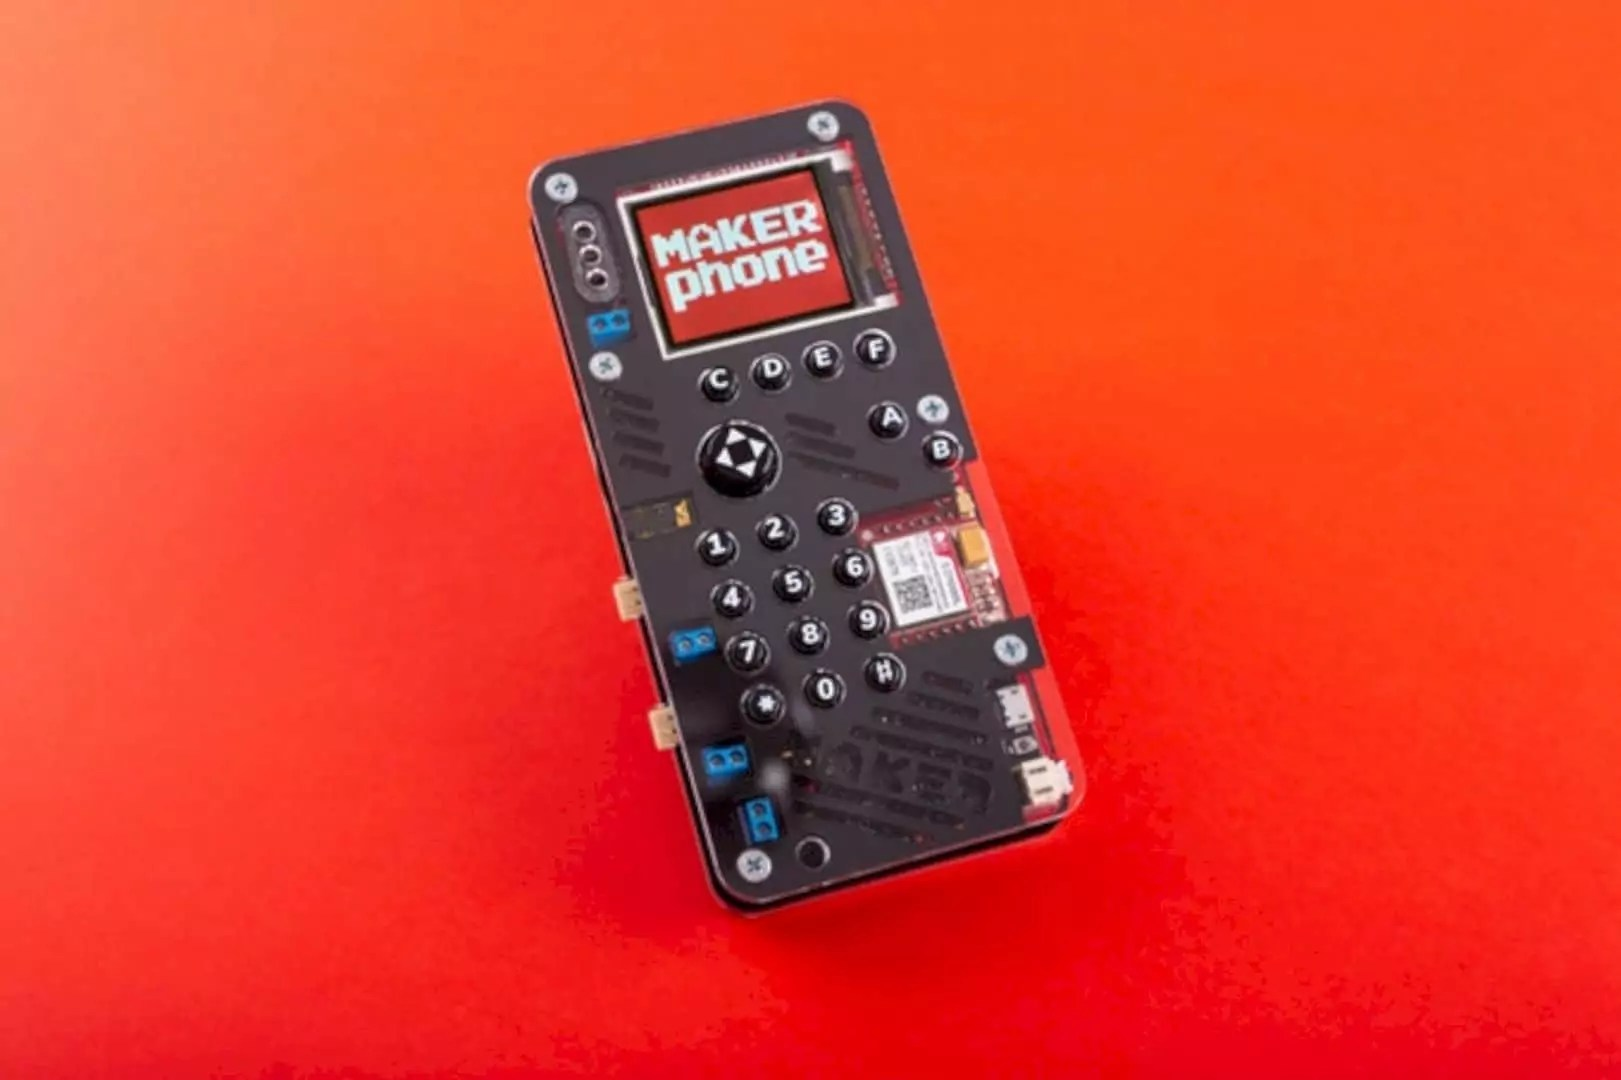 MAKERphone: Imagine if you could build your very own mobile phone!